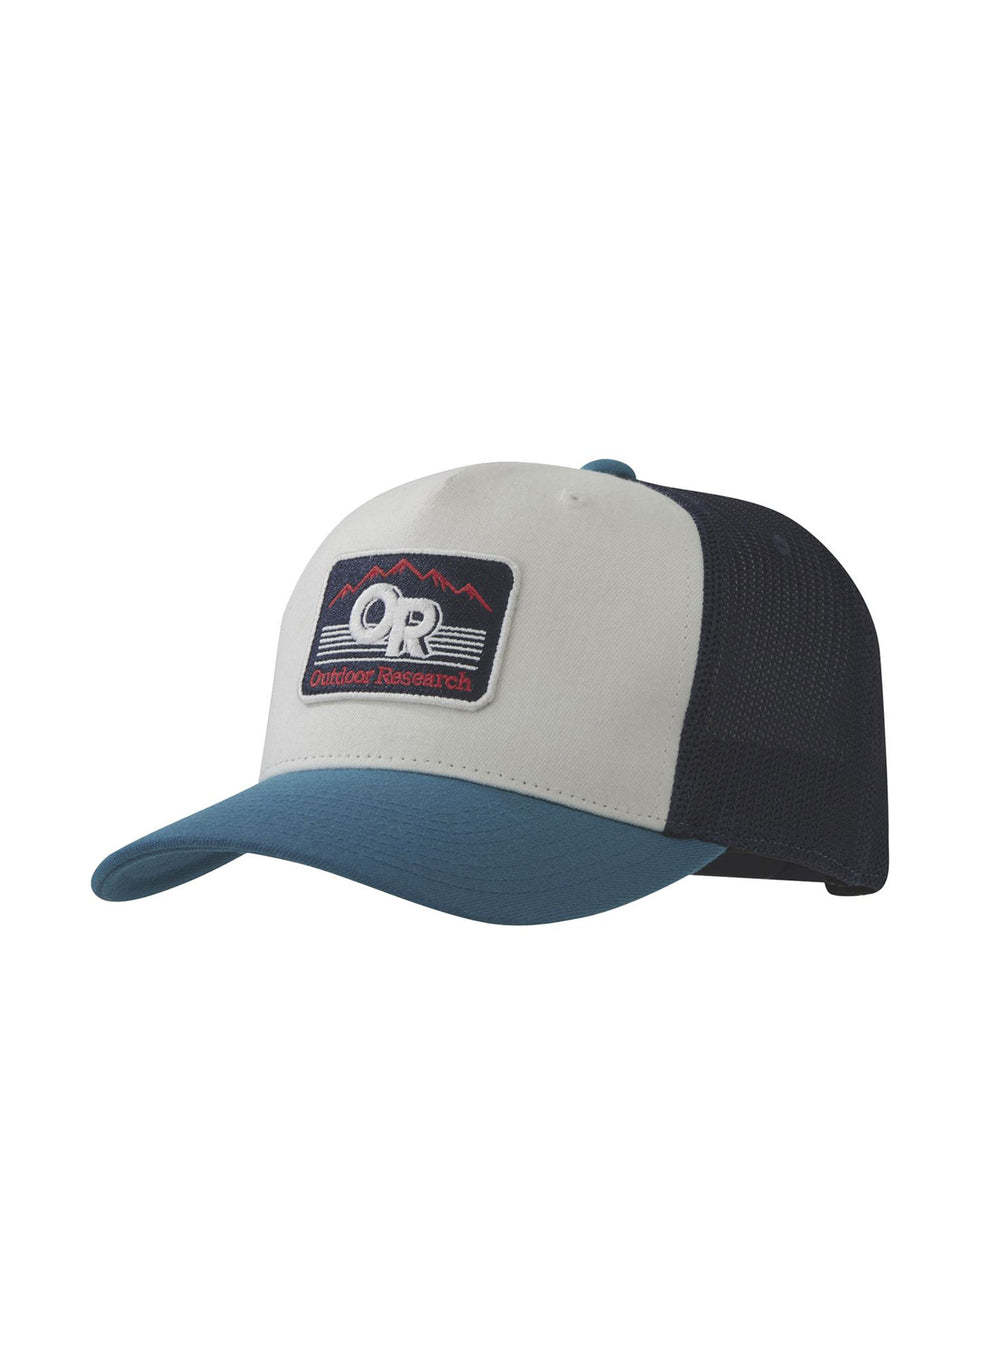 Outdoor Research Advocate Trucker Cap